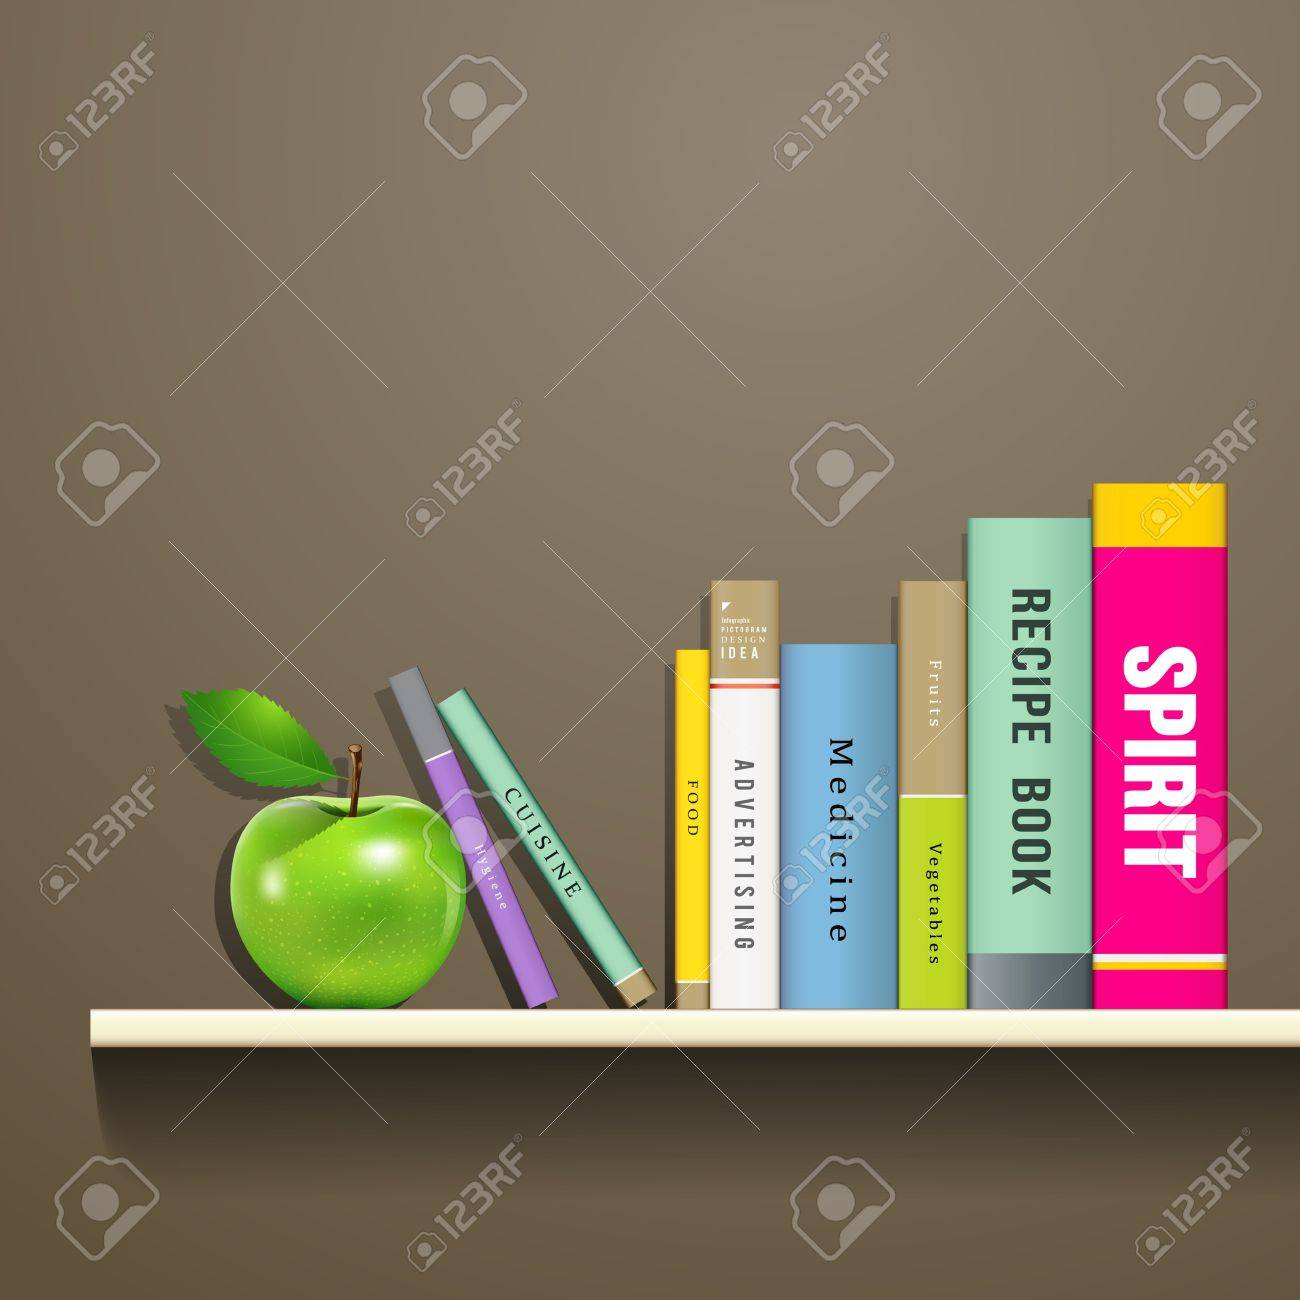 Row of colorful books and green apple on shelf Stock Vector - 20682766